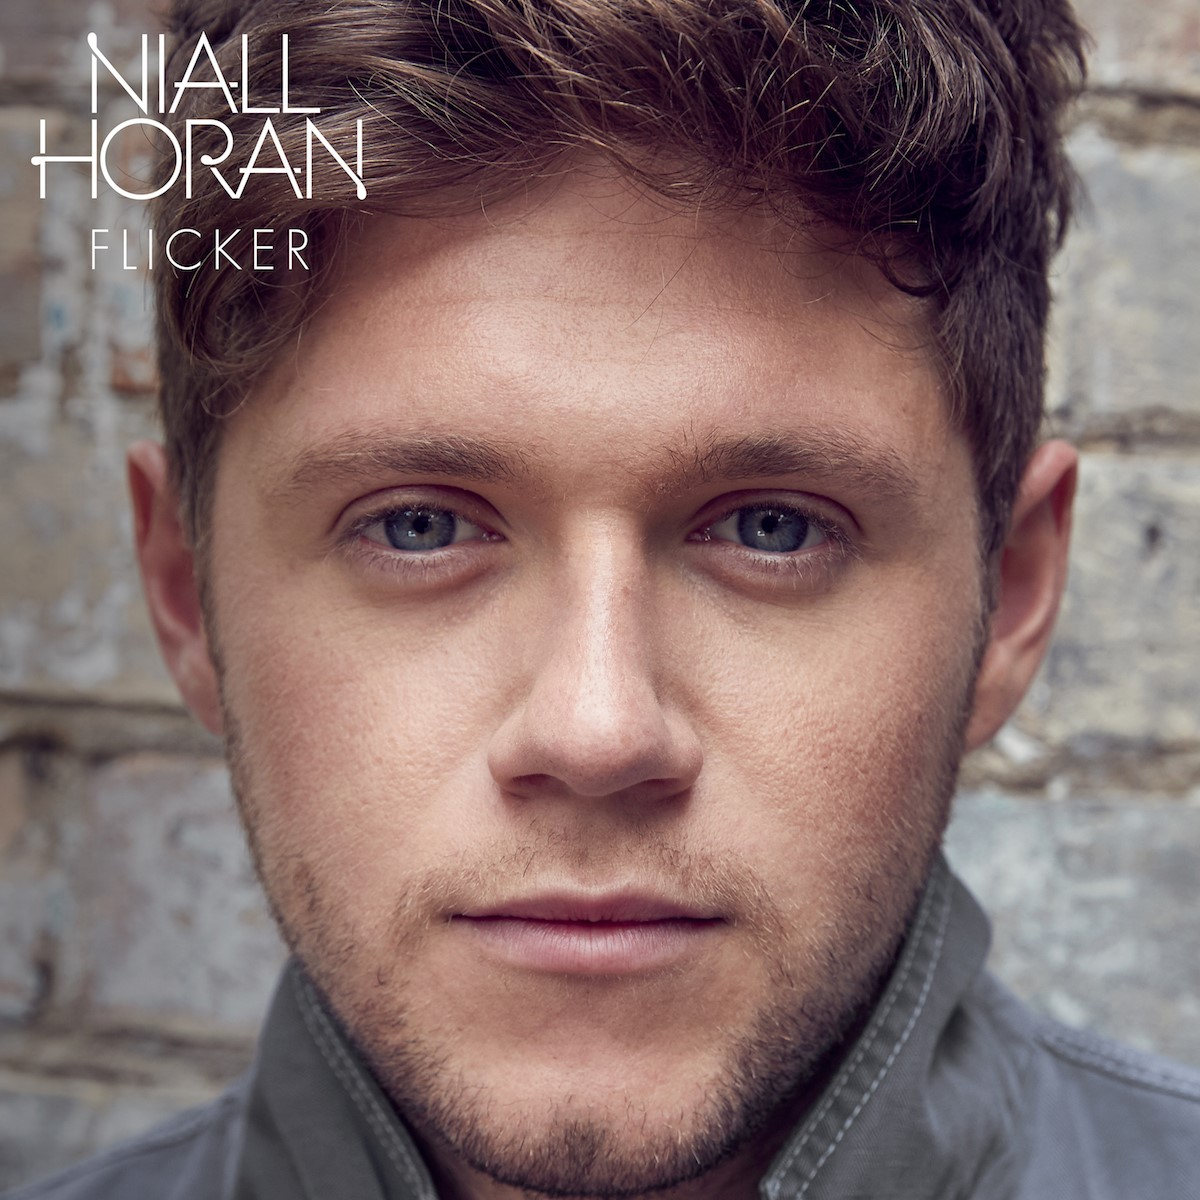 Niall Horan Coming to the BOK Center!